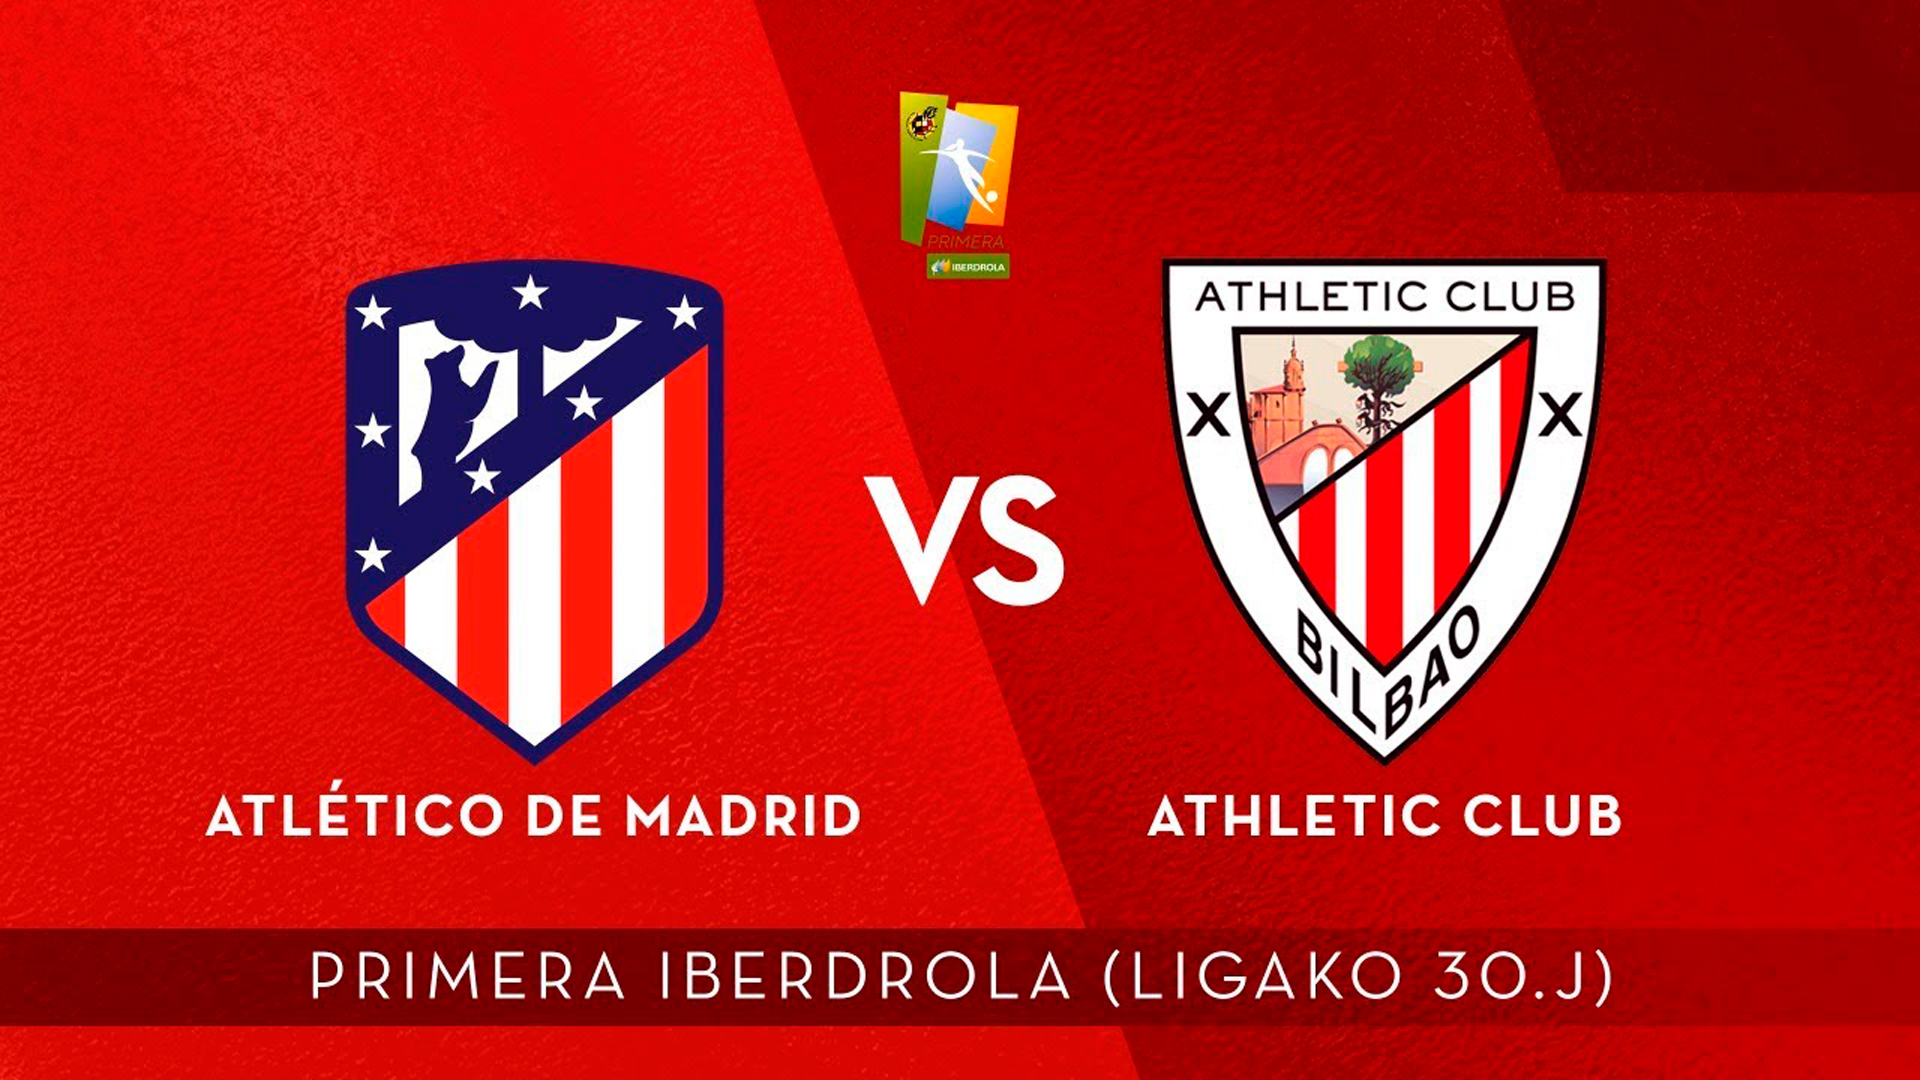 AUDIO LIVE: Atletico Madril- Athletic Club (30.J Primera Iberdrola)